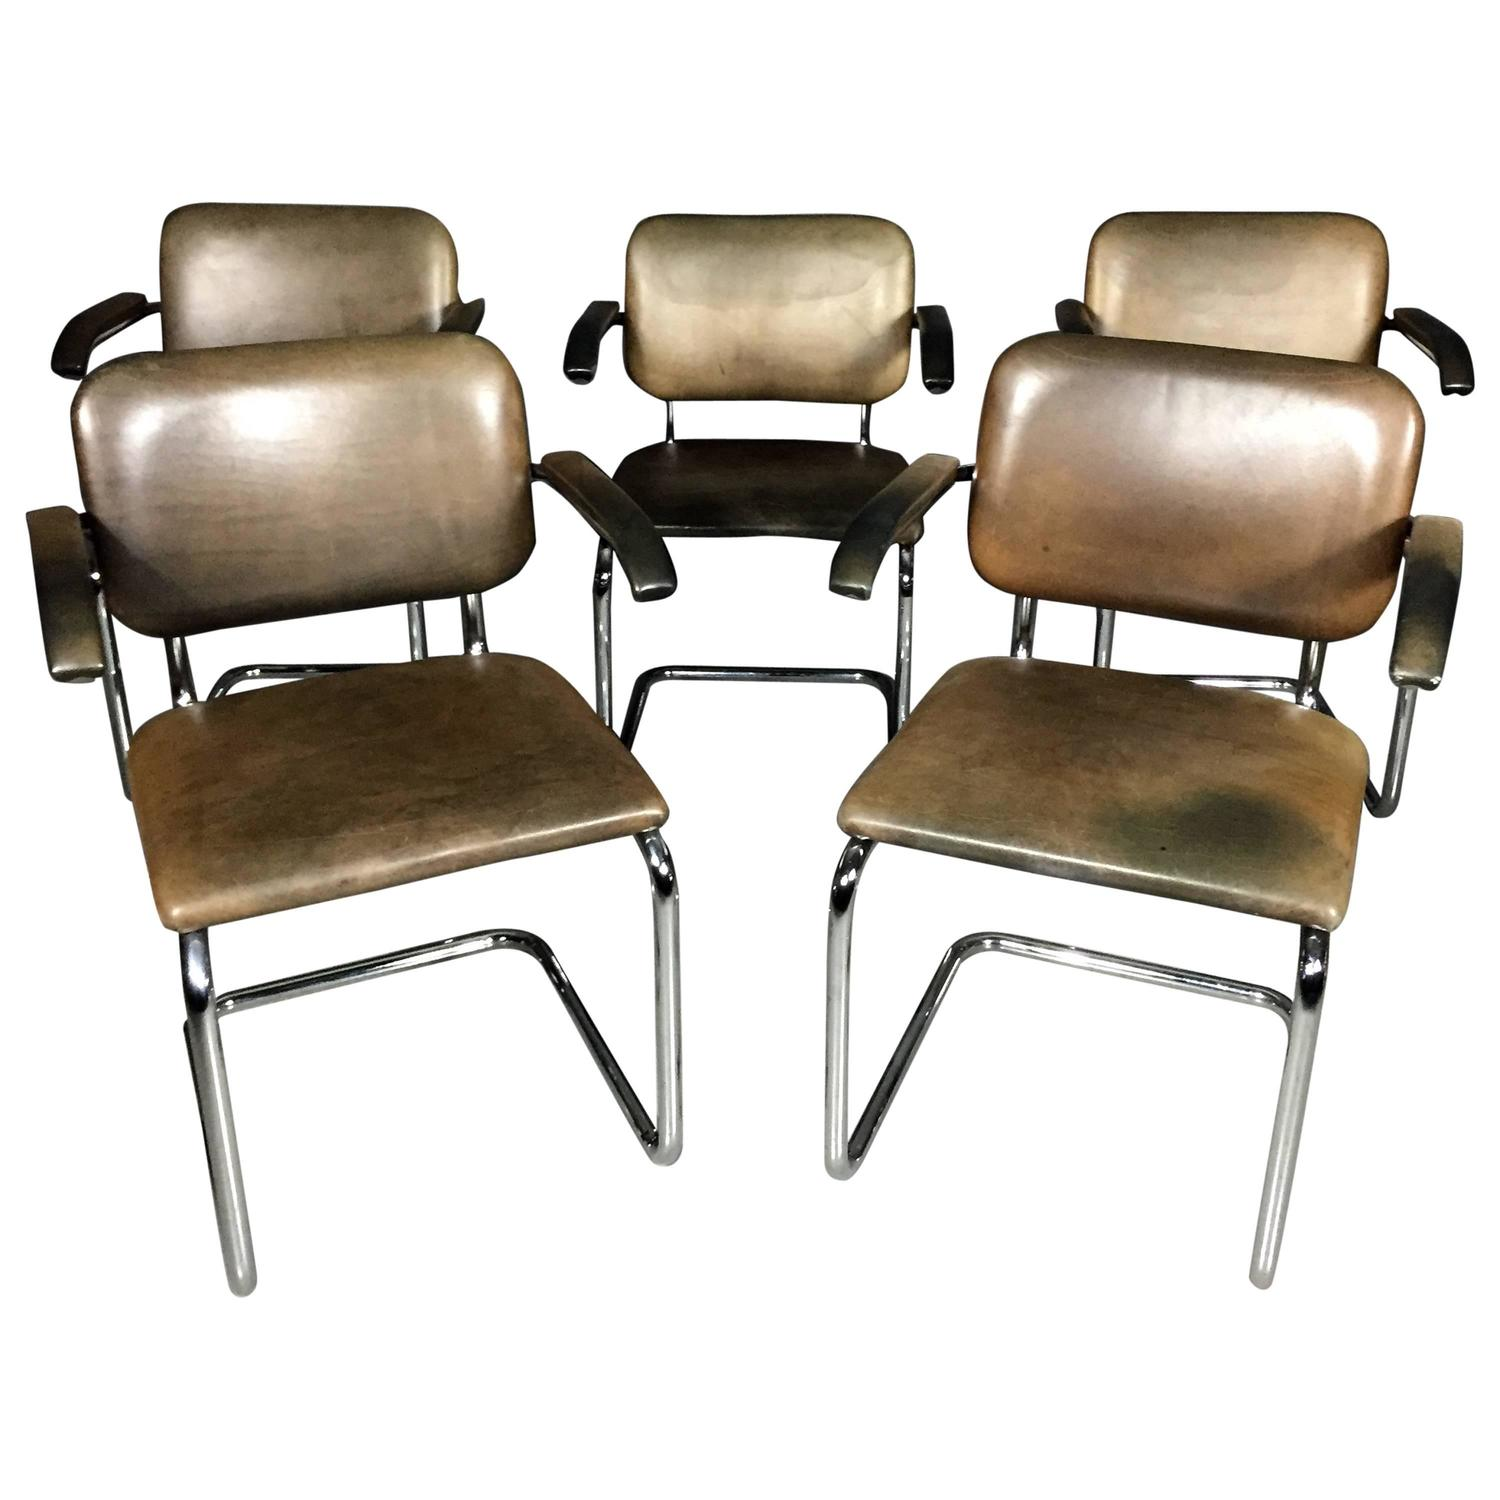 Set of four leather and chrome dining chairs knoll int 39 l for Leather and chrome dining chairs